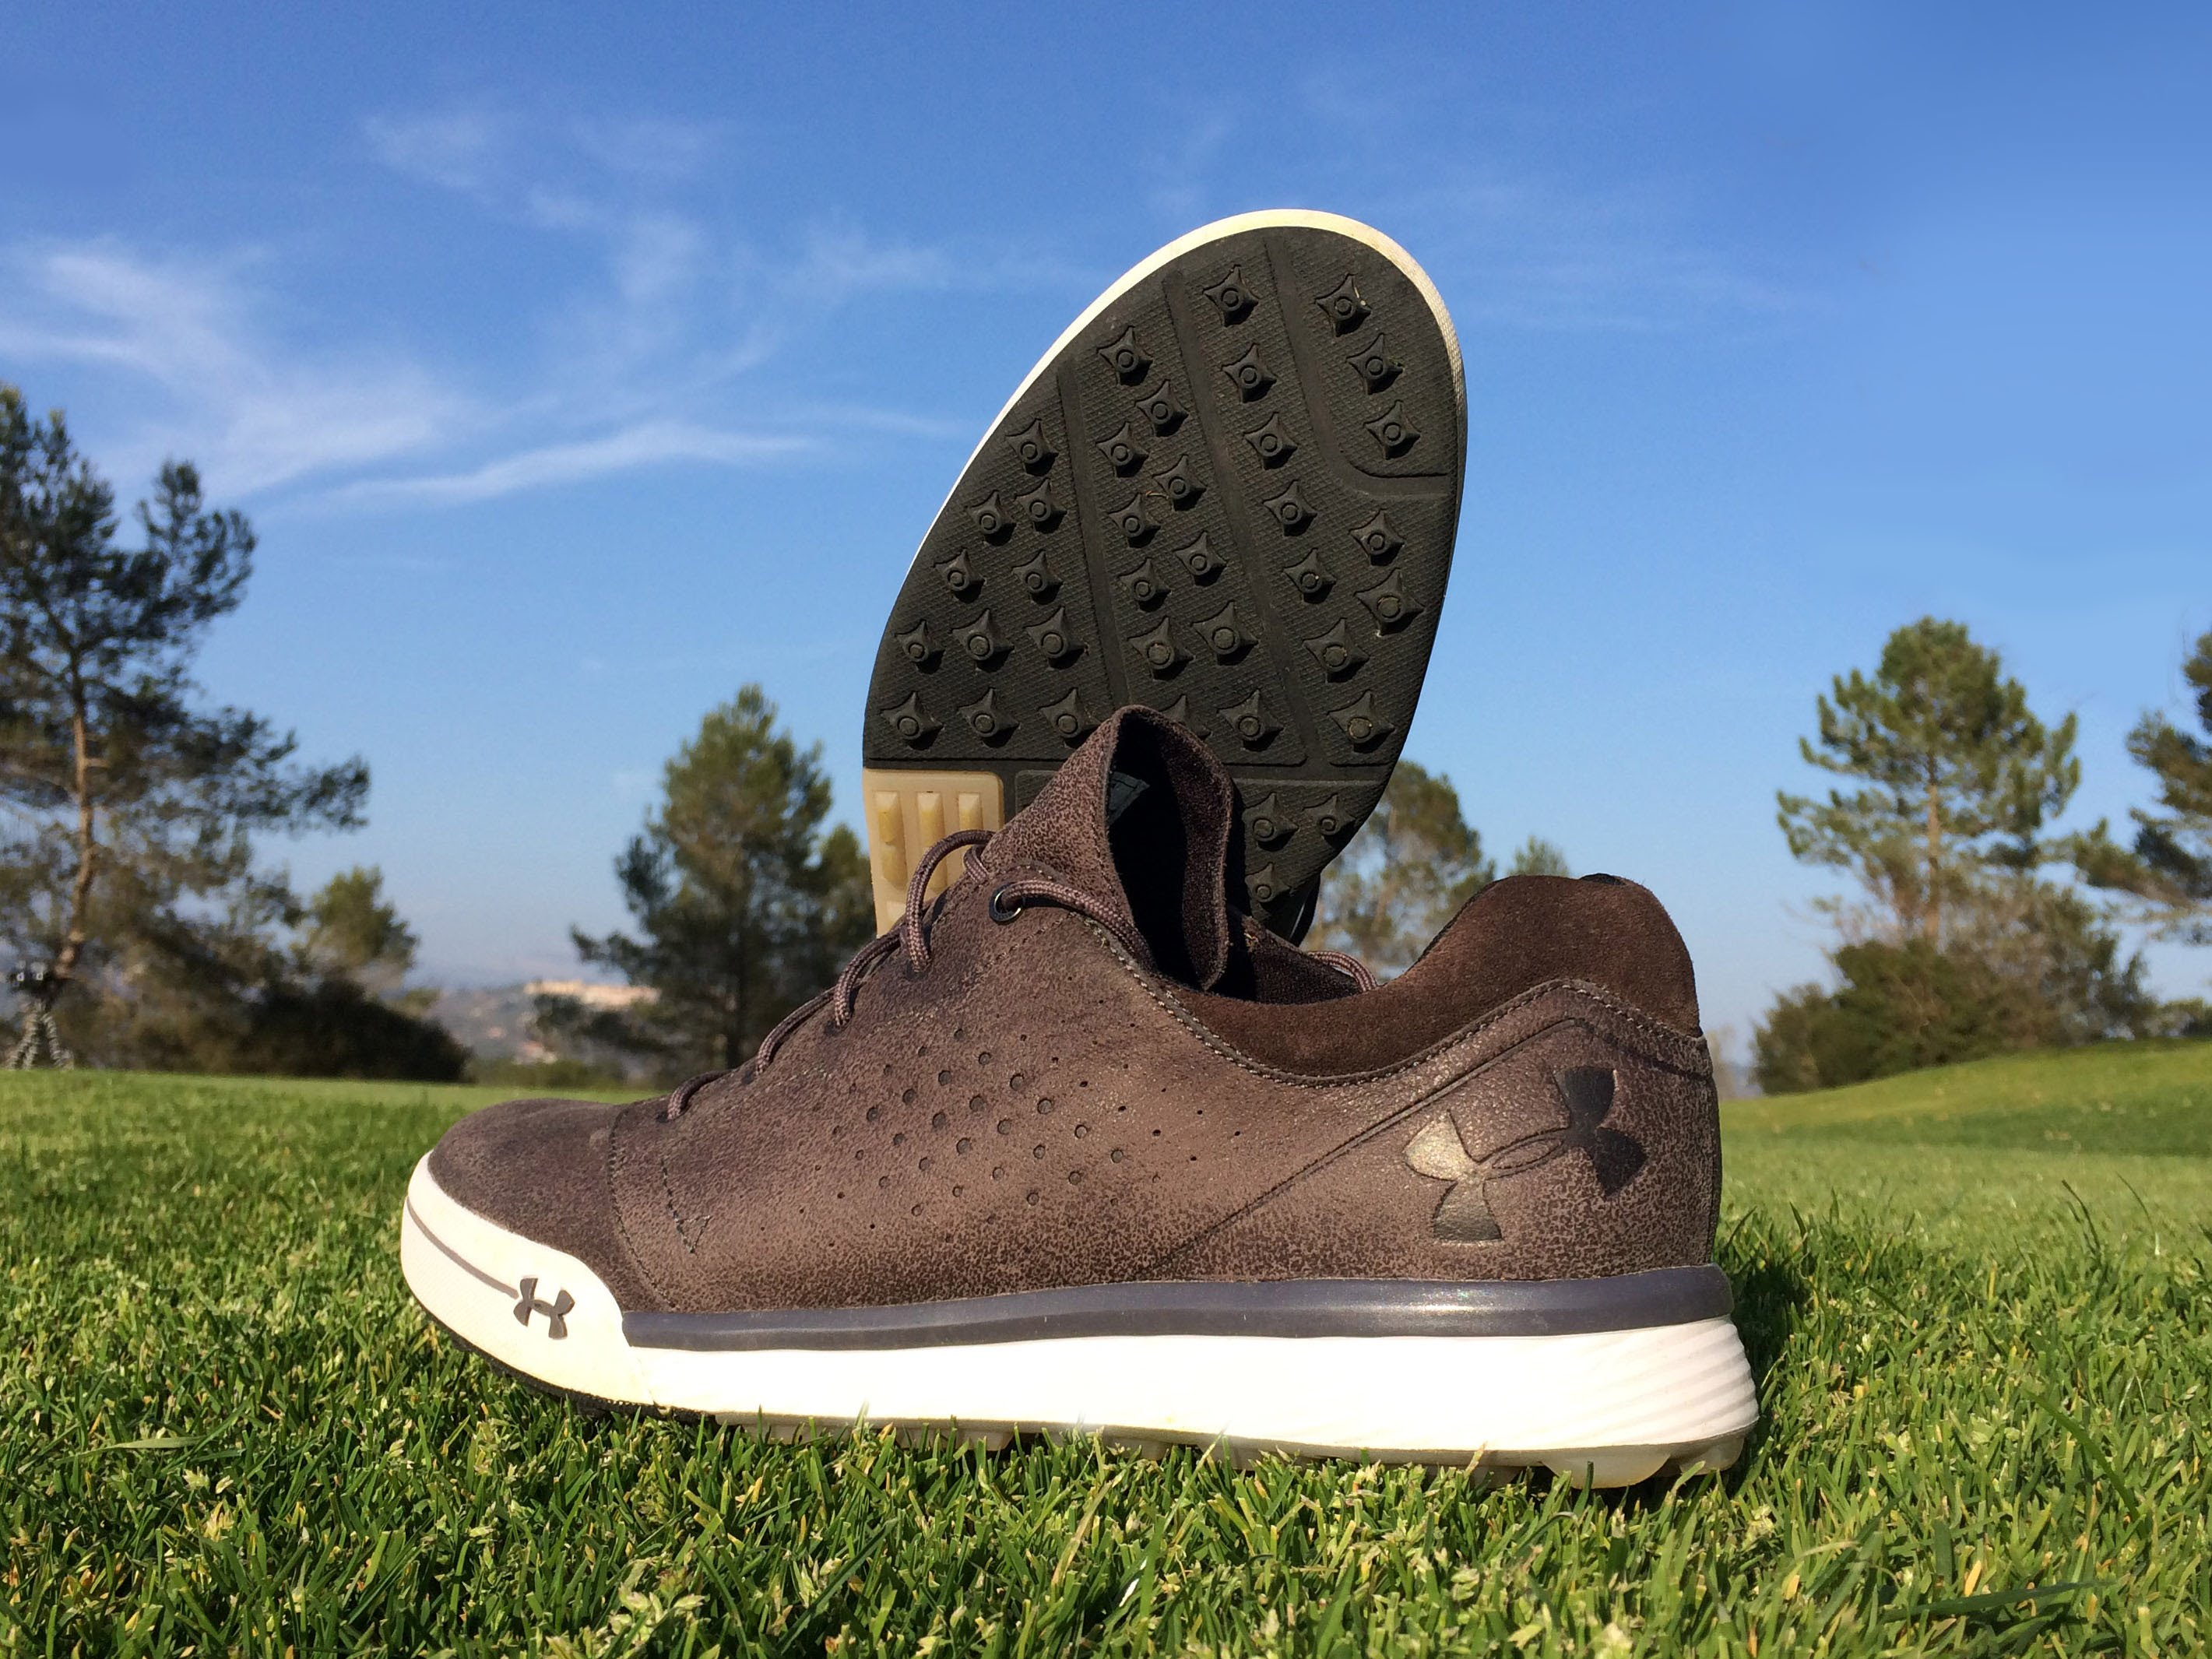 7c915ef9 10 Best Under Armour Golf Shoes Reviewed in 2019 | Hombre Golf Club